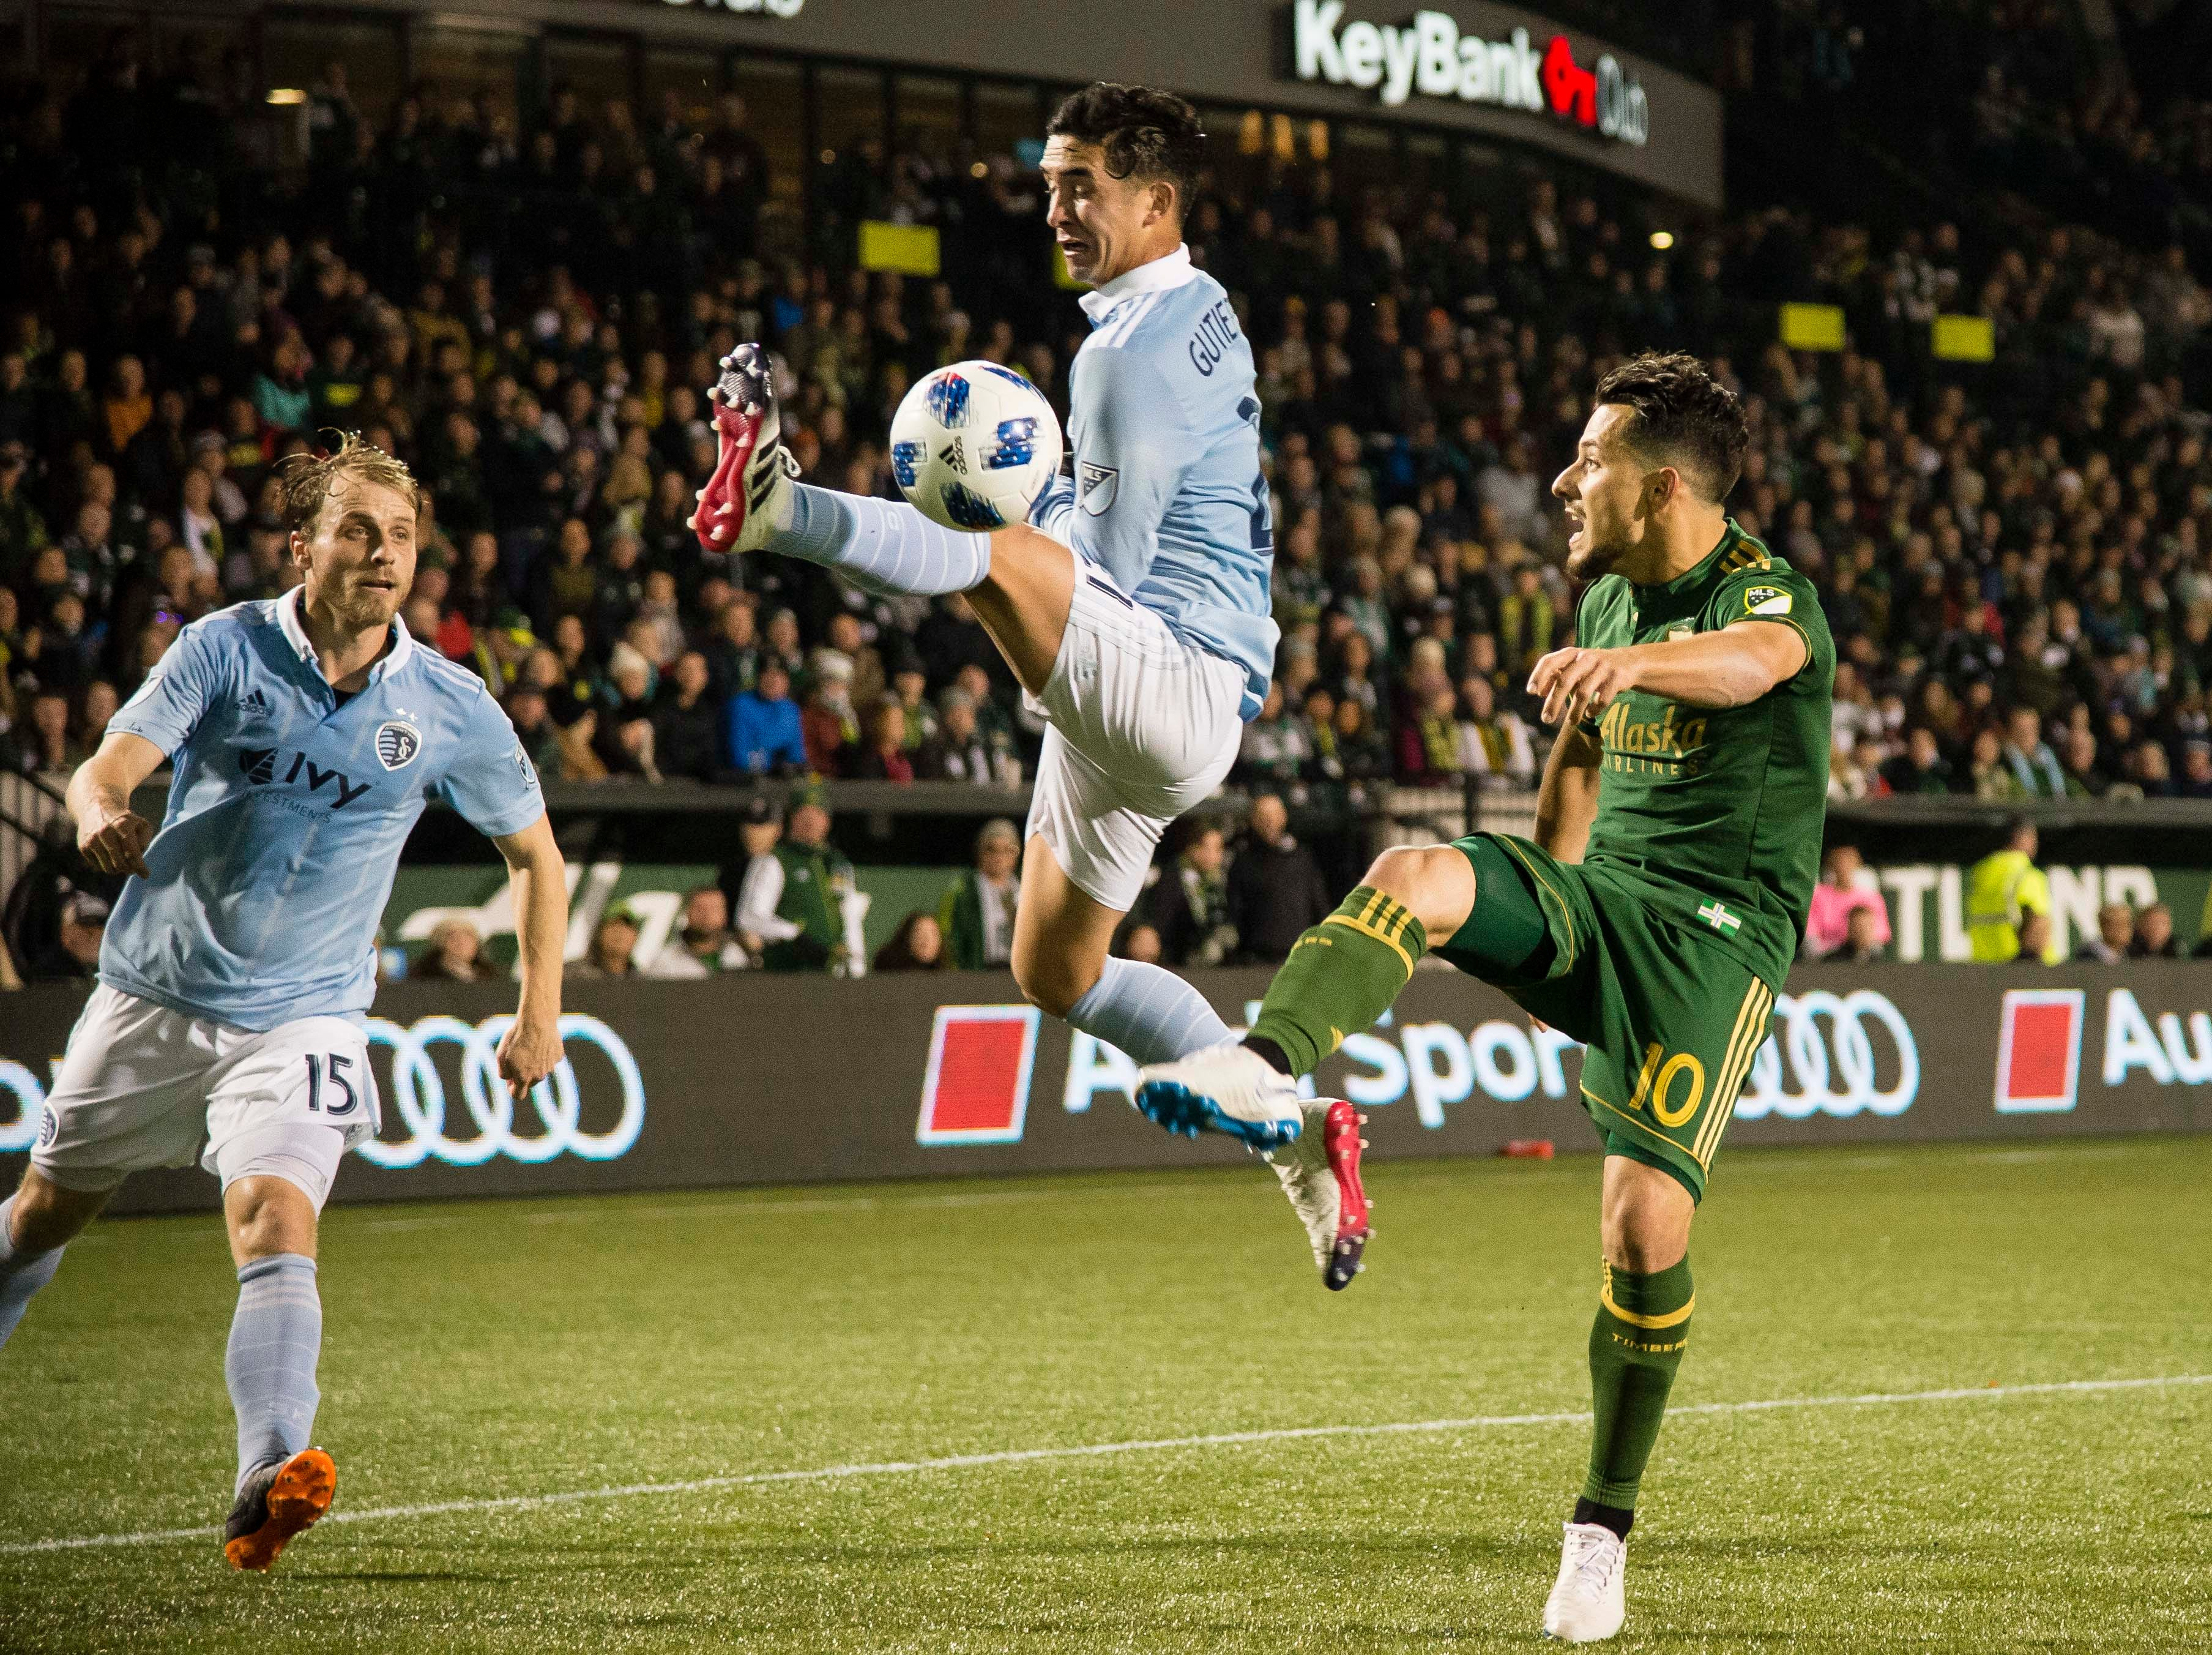 Sporting Kansas City midfielder Felipe Gutierrez (21) kicks the ball away from Portland Timbers midfielder Sebastian Blanco (10) during the first half in the first leg of the MLS Western Conference Championship at Providence Park.